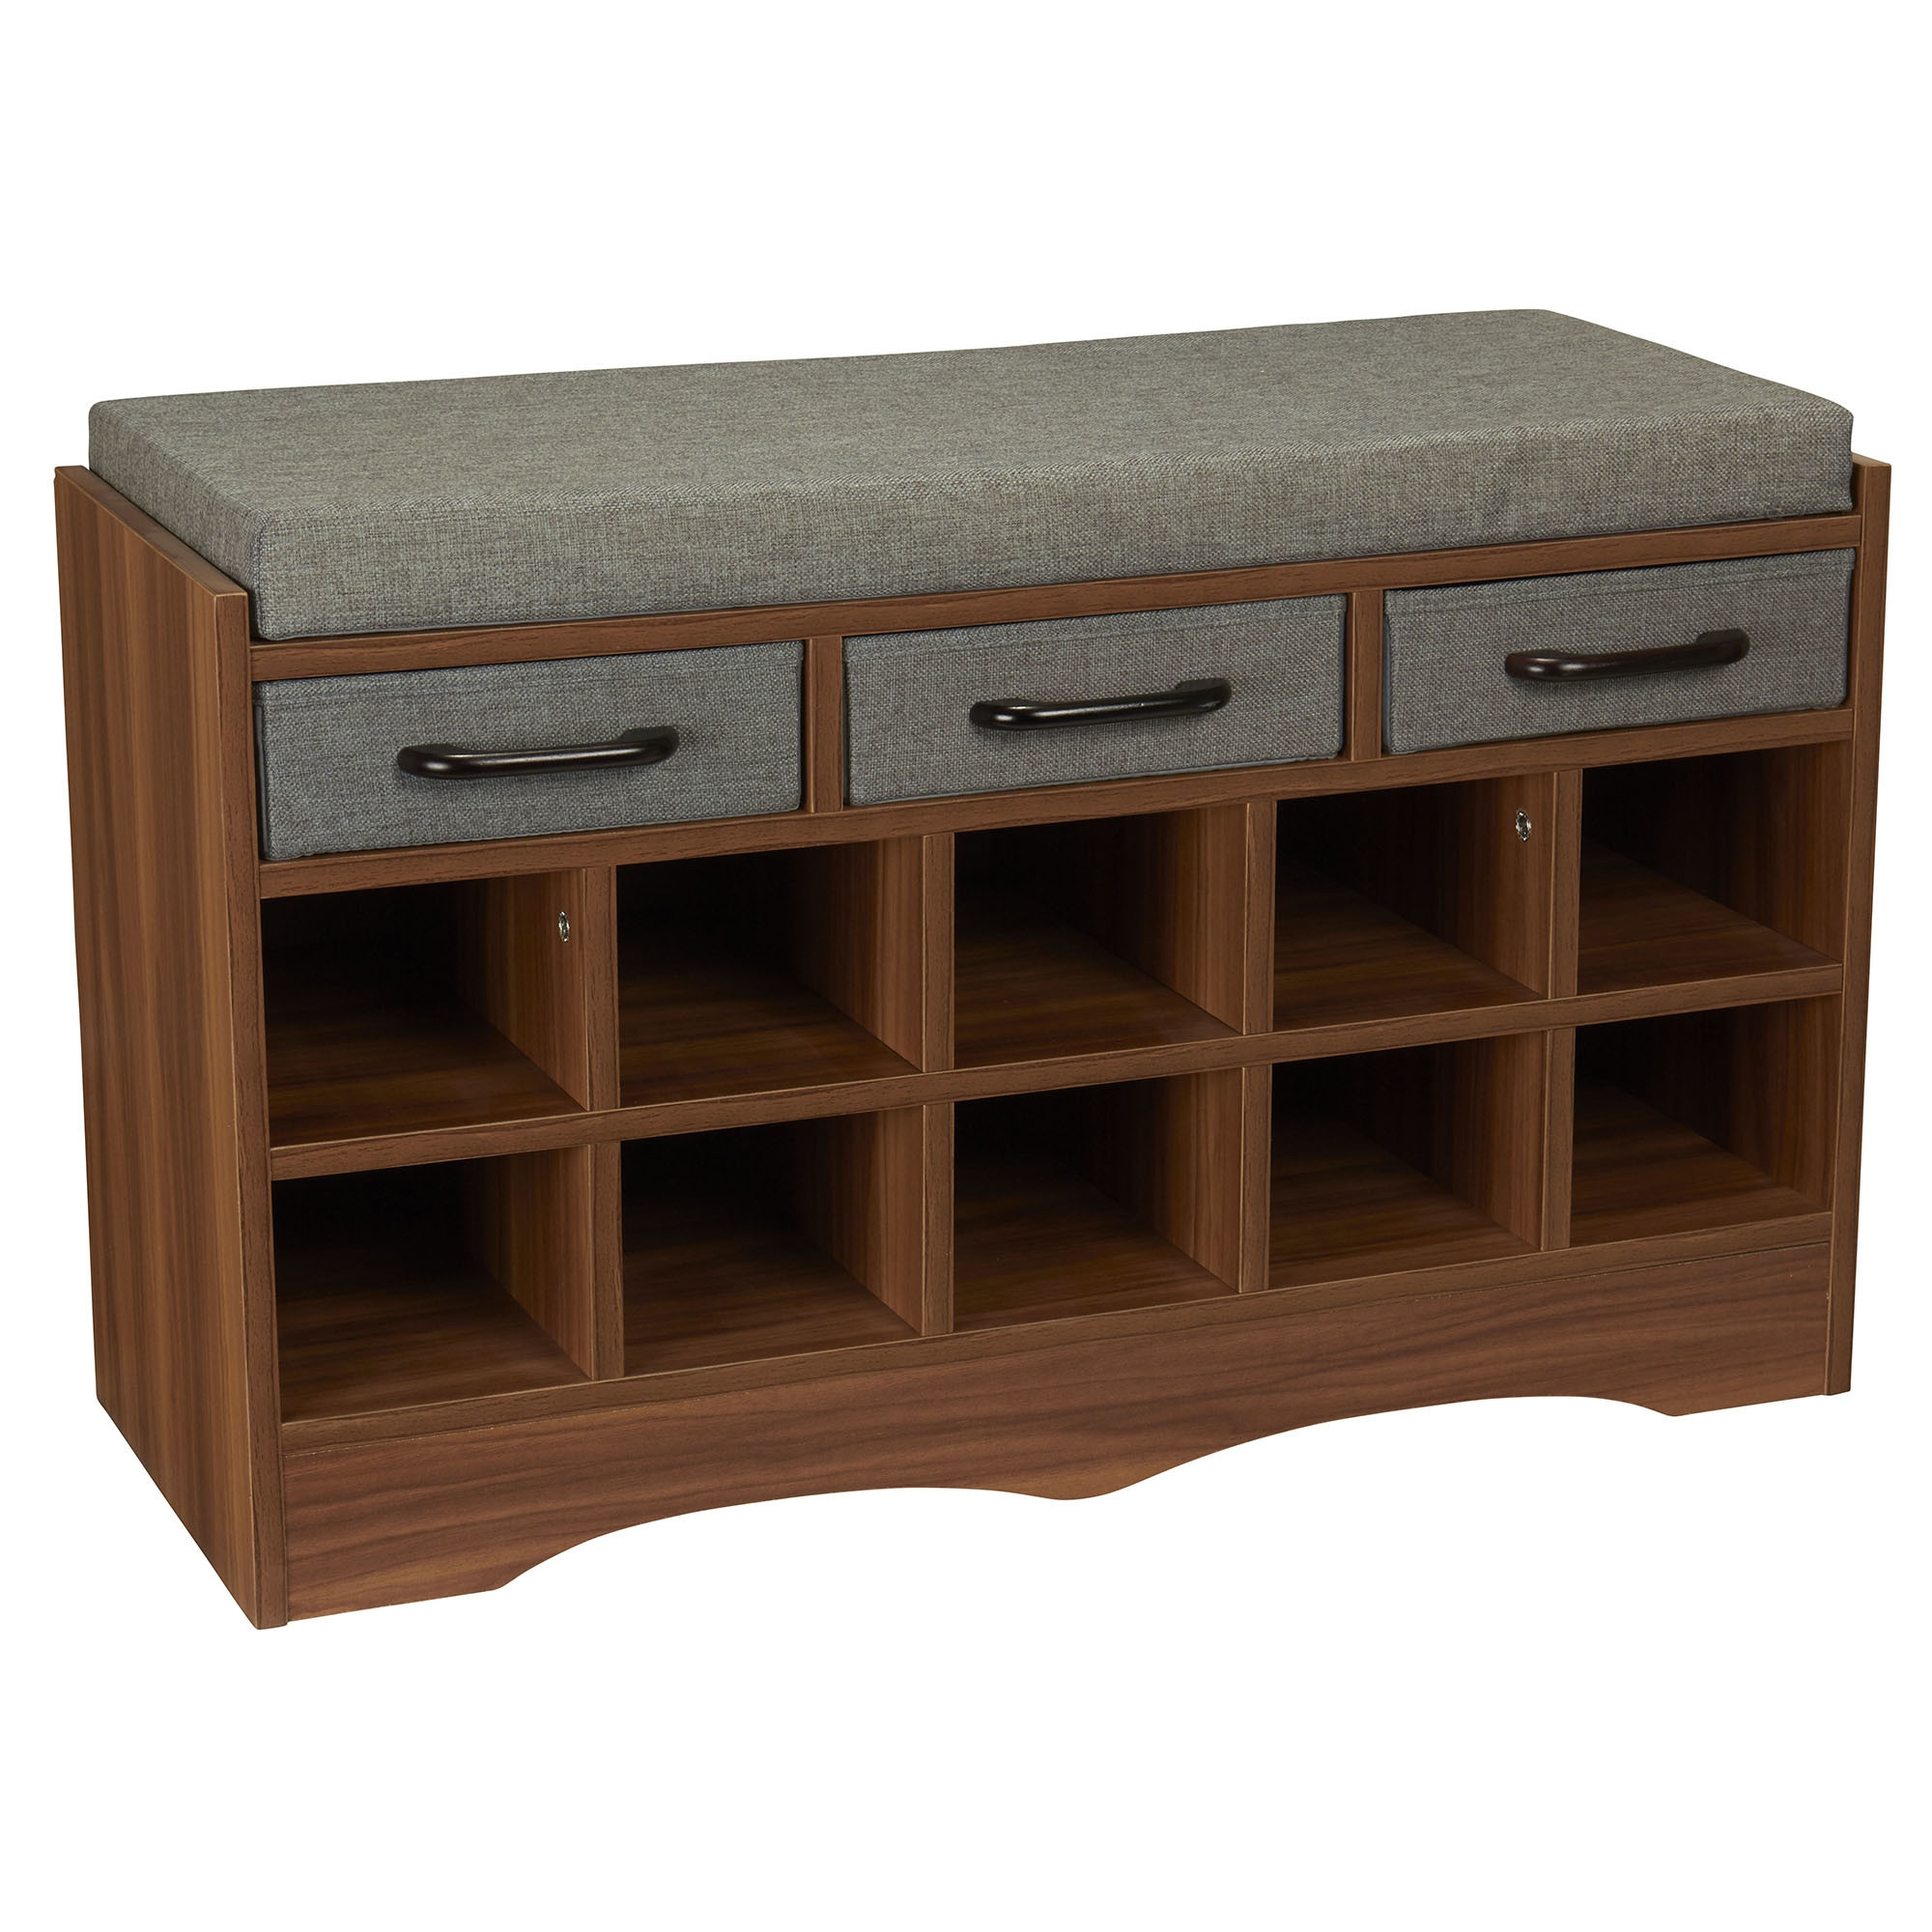 Best ideas about Shoe Benches Entryway . Save or Pin Narrow Shoe Storage Bench Now.